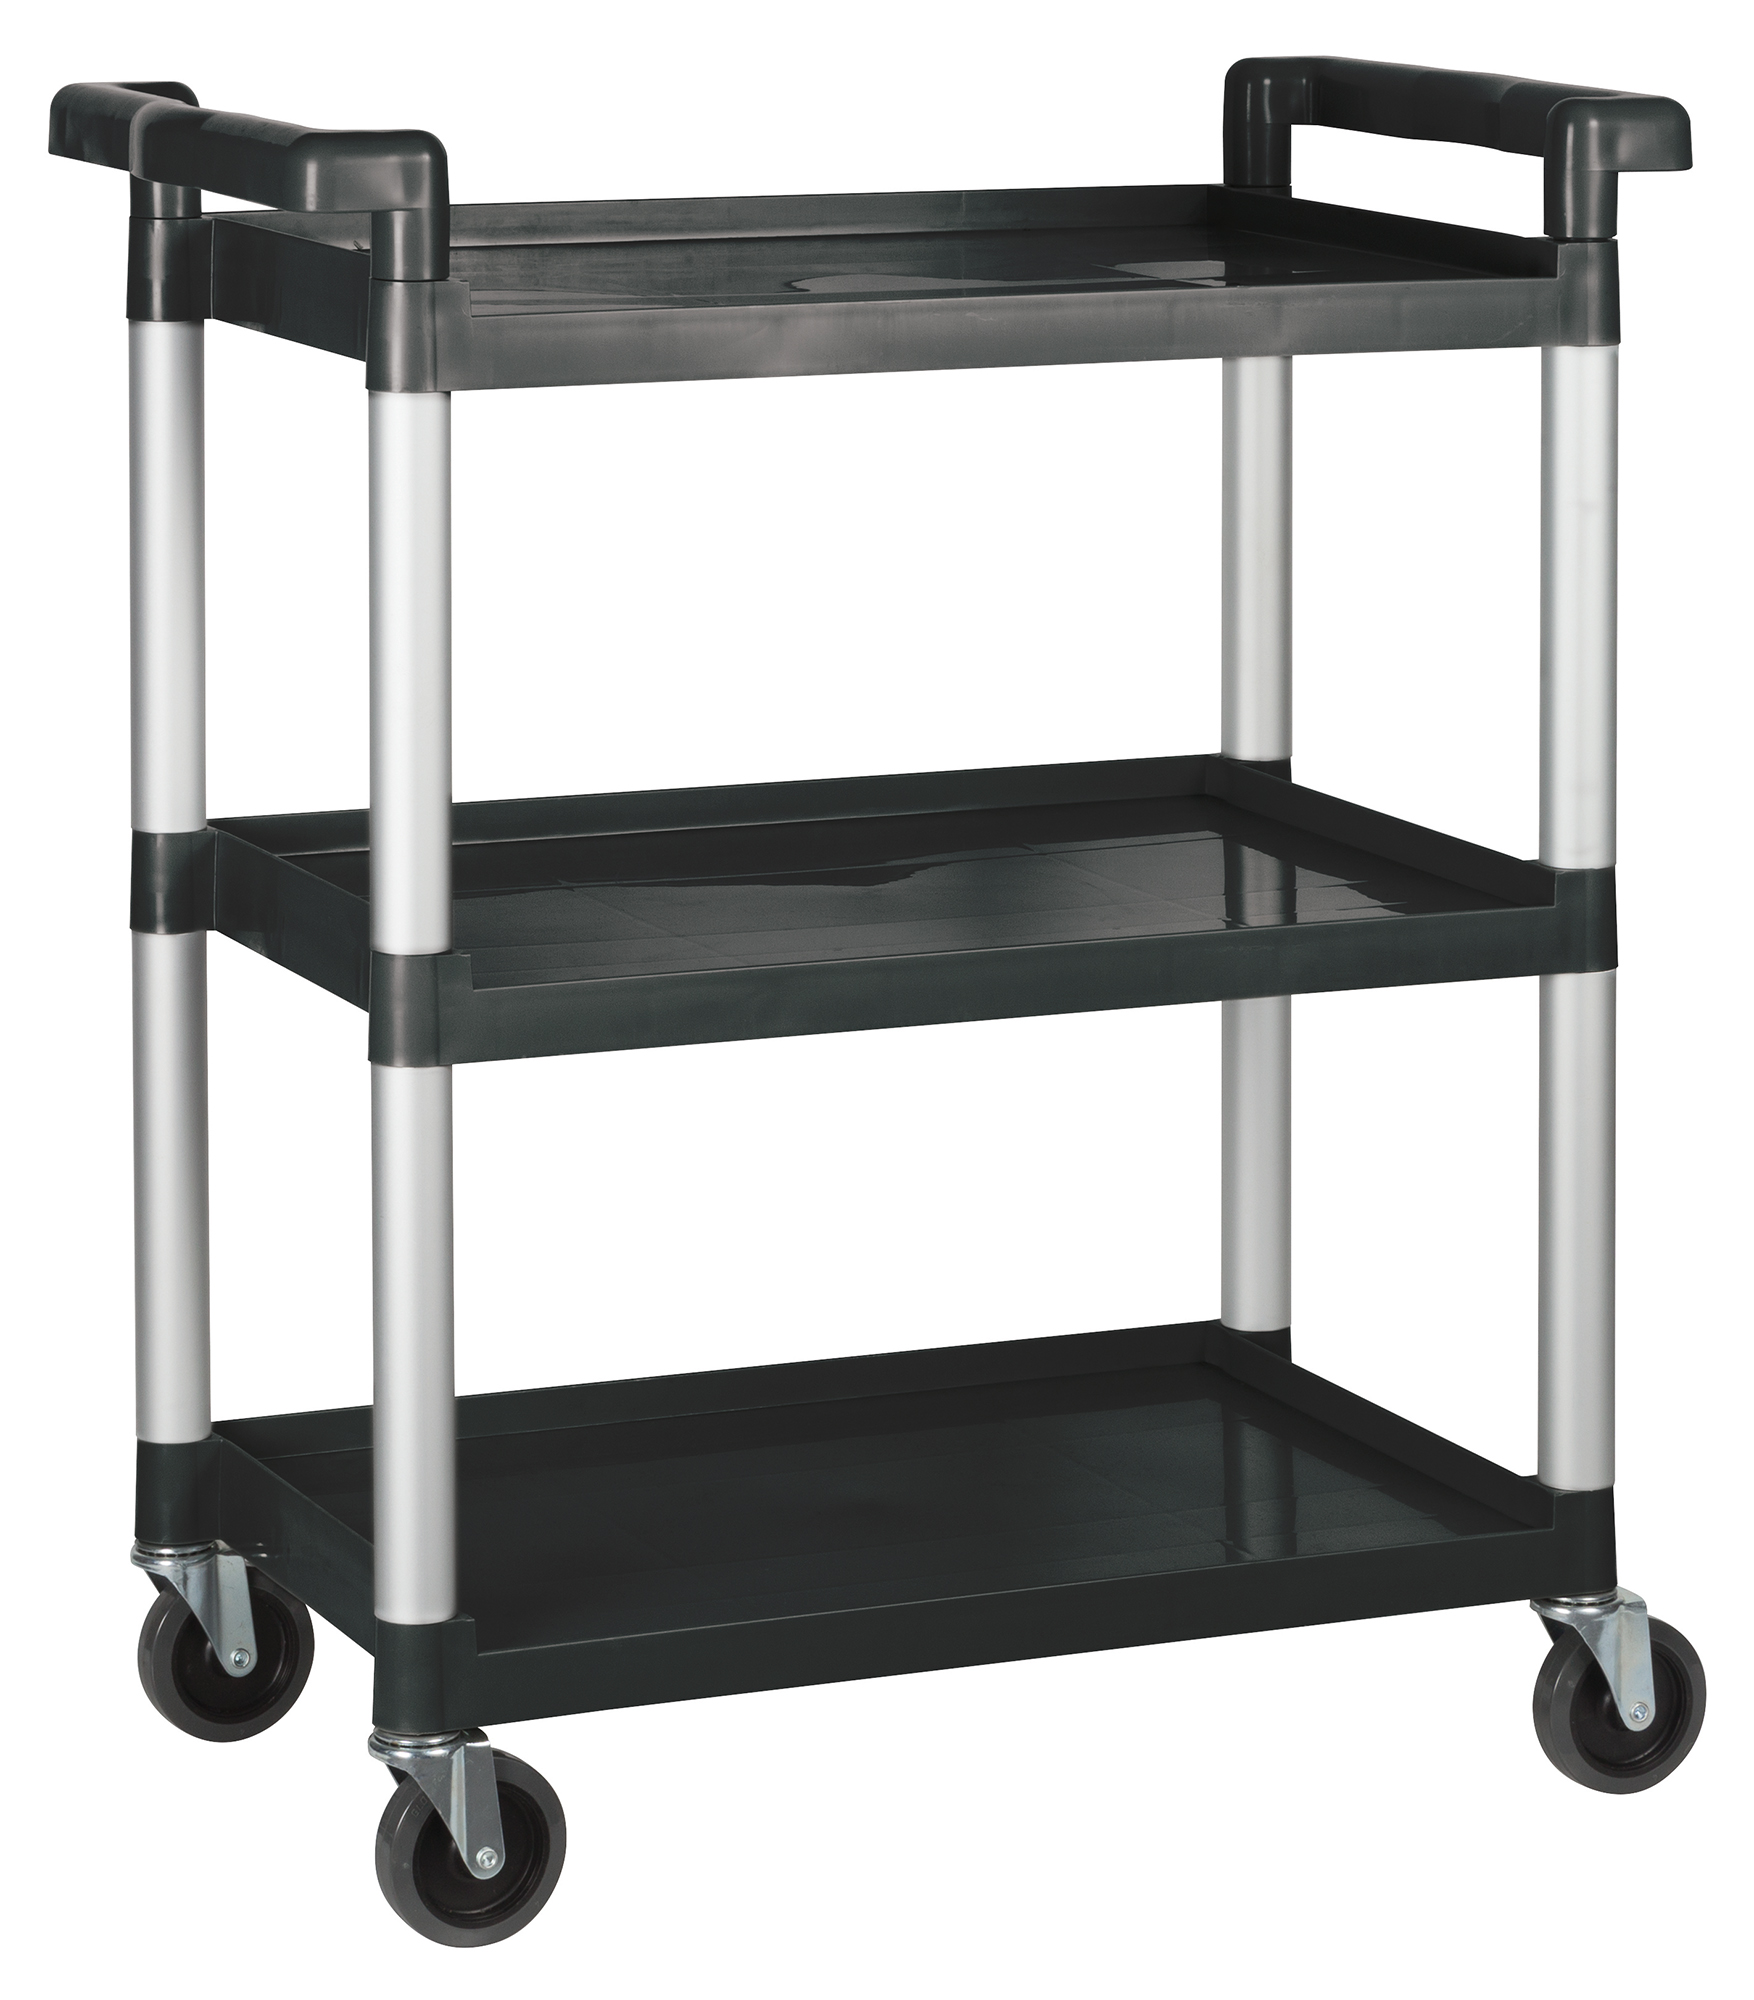 Winco UC-2415K utility & bus carts